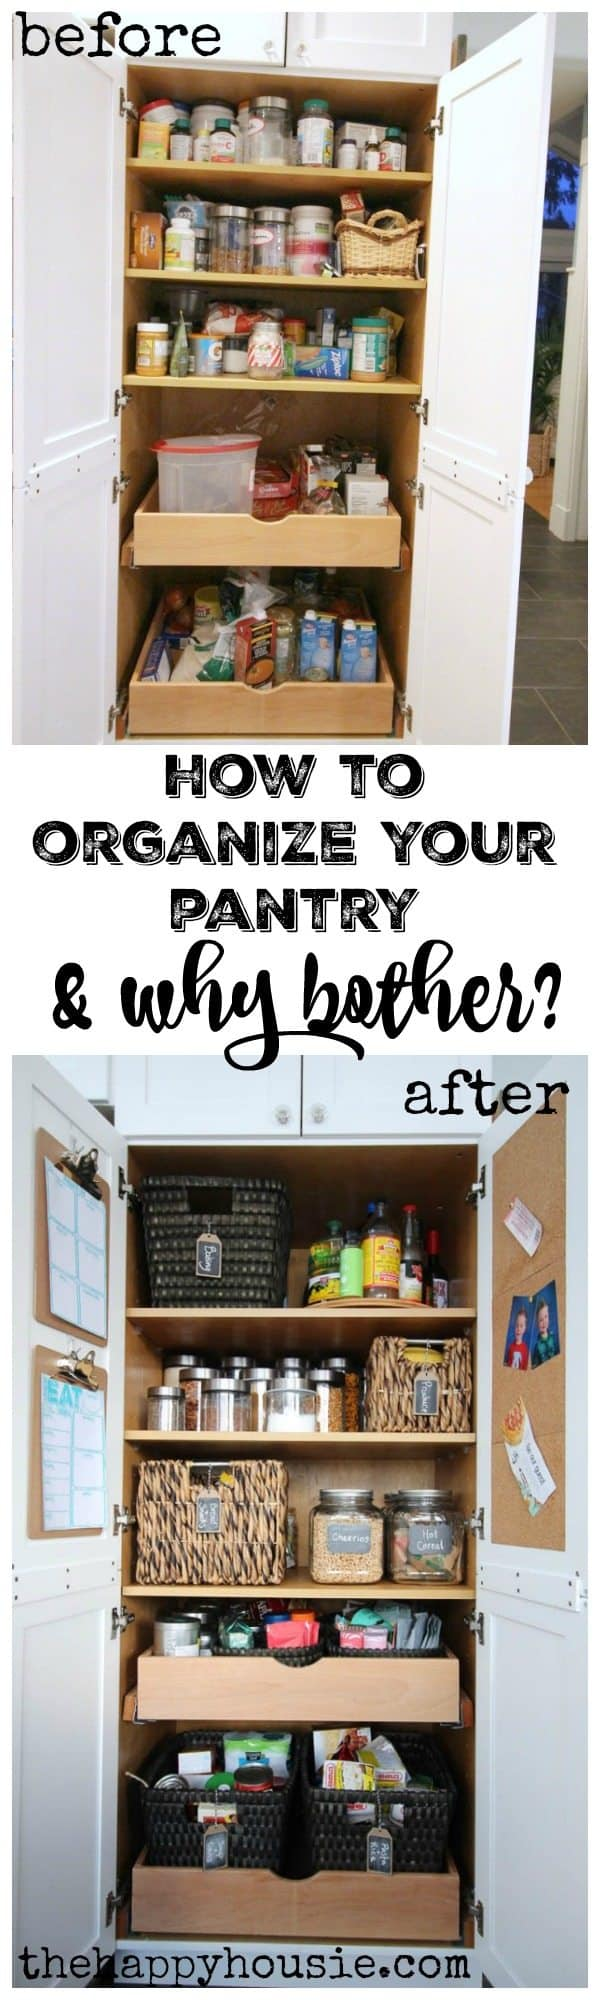 How-to-Organize-Your-Pantry-and-3-reasons-you-should-even-bother-with-it-at-thehappyhousie.com_